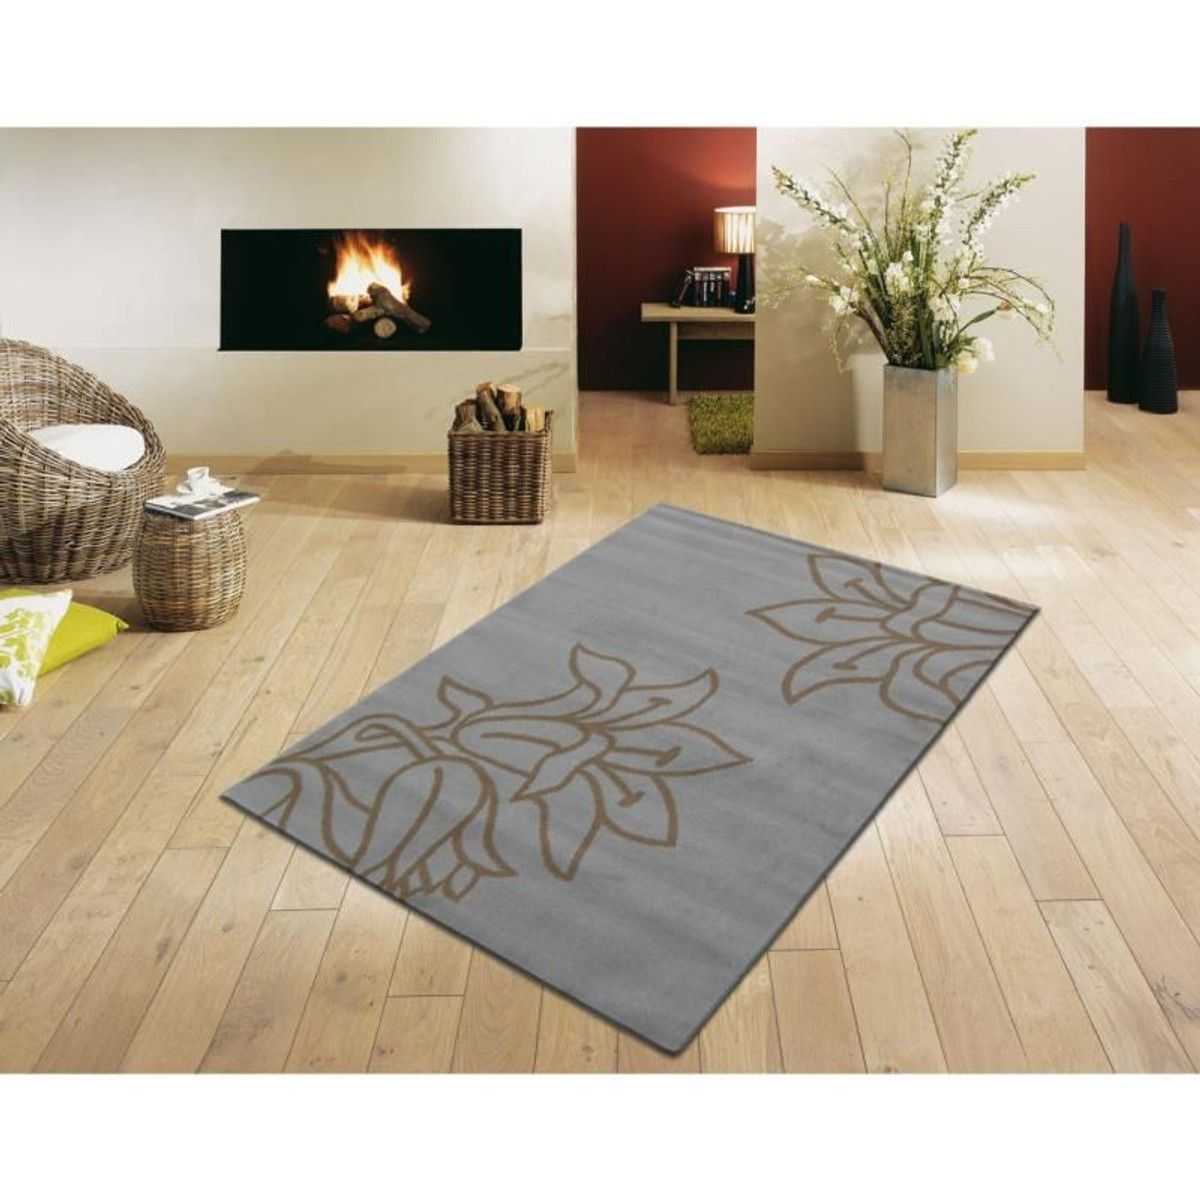 Tapis Moderne Paris Fleur Gris Taupe Taille 120x160 Cm 085x150 Cm 160x230 Cm Tapis Salon Decoration Maison Decoration Interieure